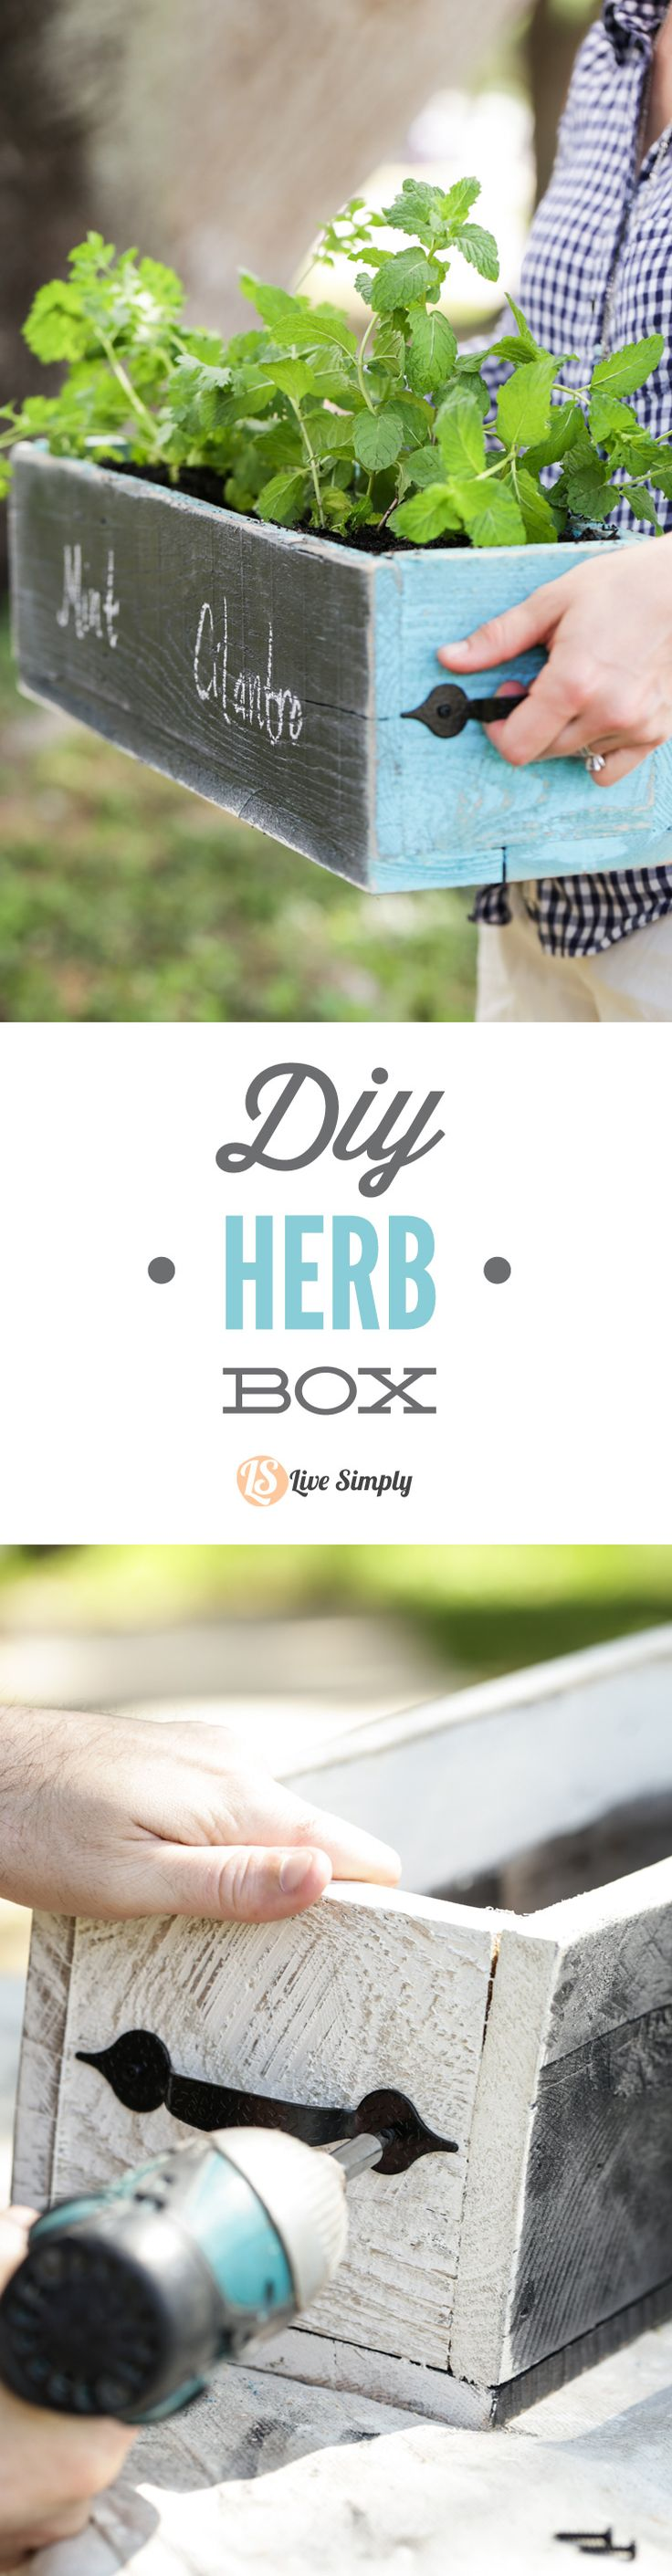 A DIY Herb Box you can make at home with easy tutorial instructional images. This shabby chic herb box is perfect for growing lettuce, leafy greens (kale, arugula, spinach), and herbs! Also makes an awesome Mother's Day gift. http://livesimply.me/2015/04/11/diy-herb-box/